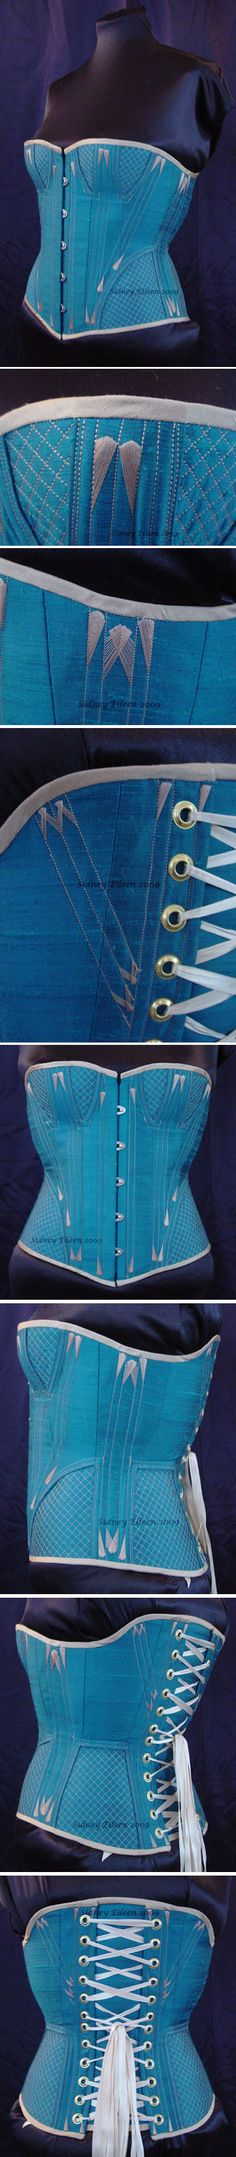 d8f28ecdcd3 This is a quilted gore Victorian overbust corset. It has peacock dupioni  silk cover material